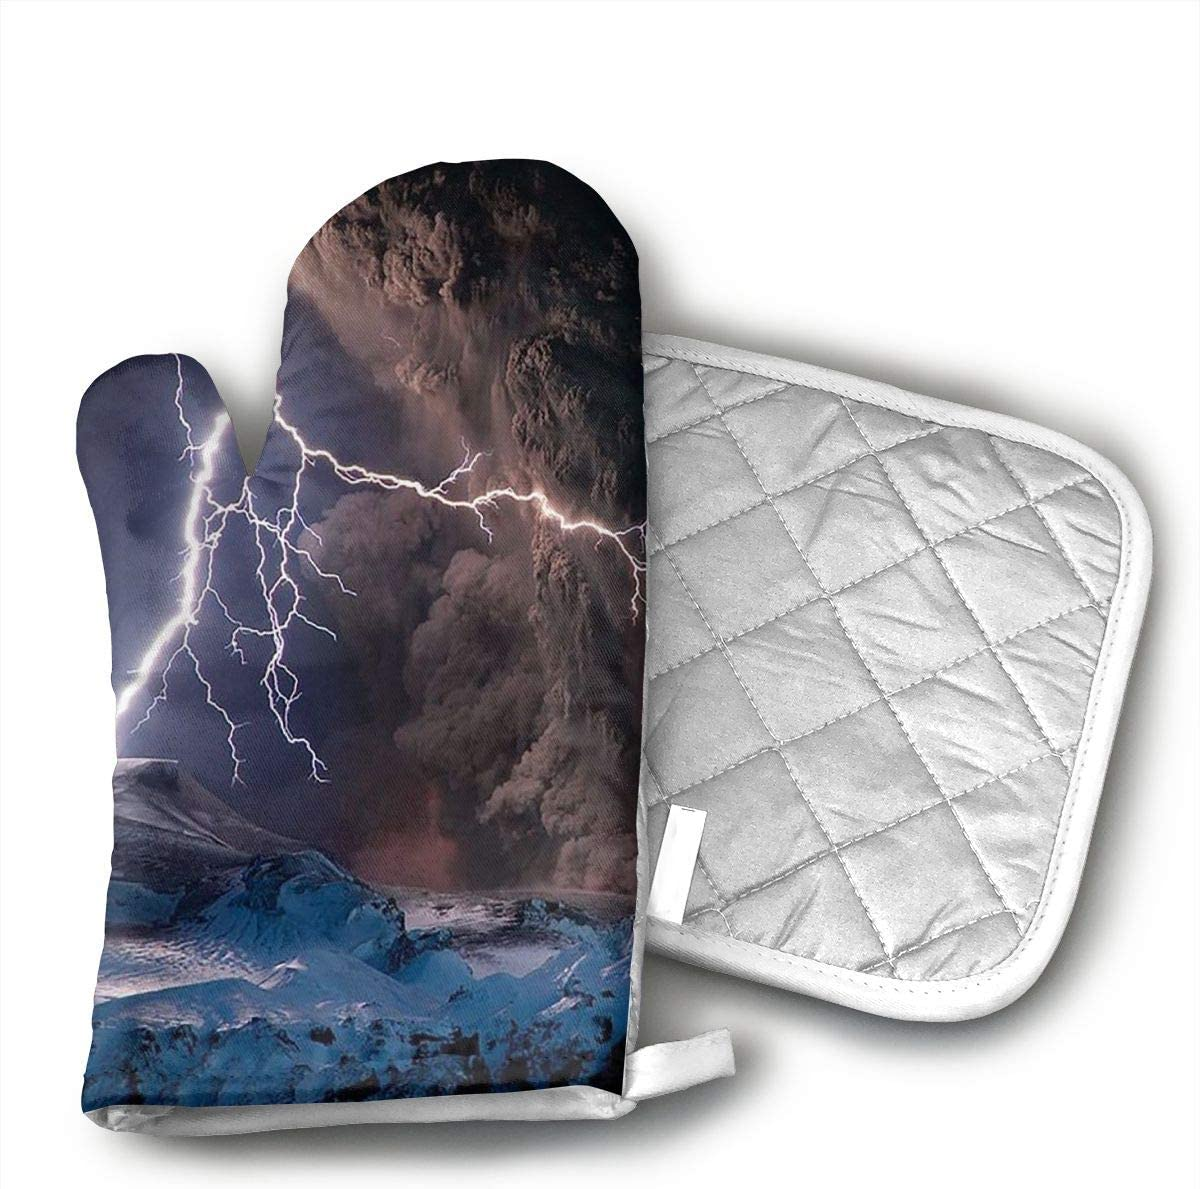 KEIOO Oven Mitts and Potholders Nature Lightning Heat Resistant Kitchen Set Non-Slip Grip Oven Gloves BBQ Cook Bak Grill Set of 2